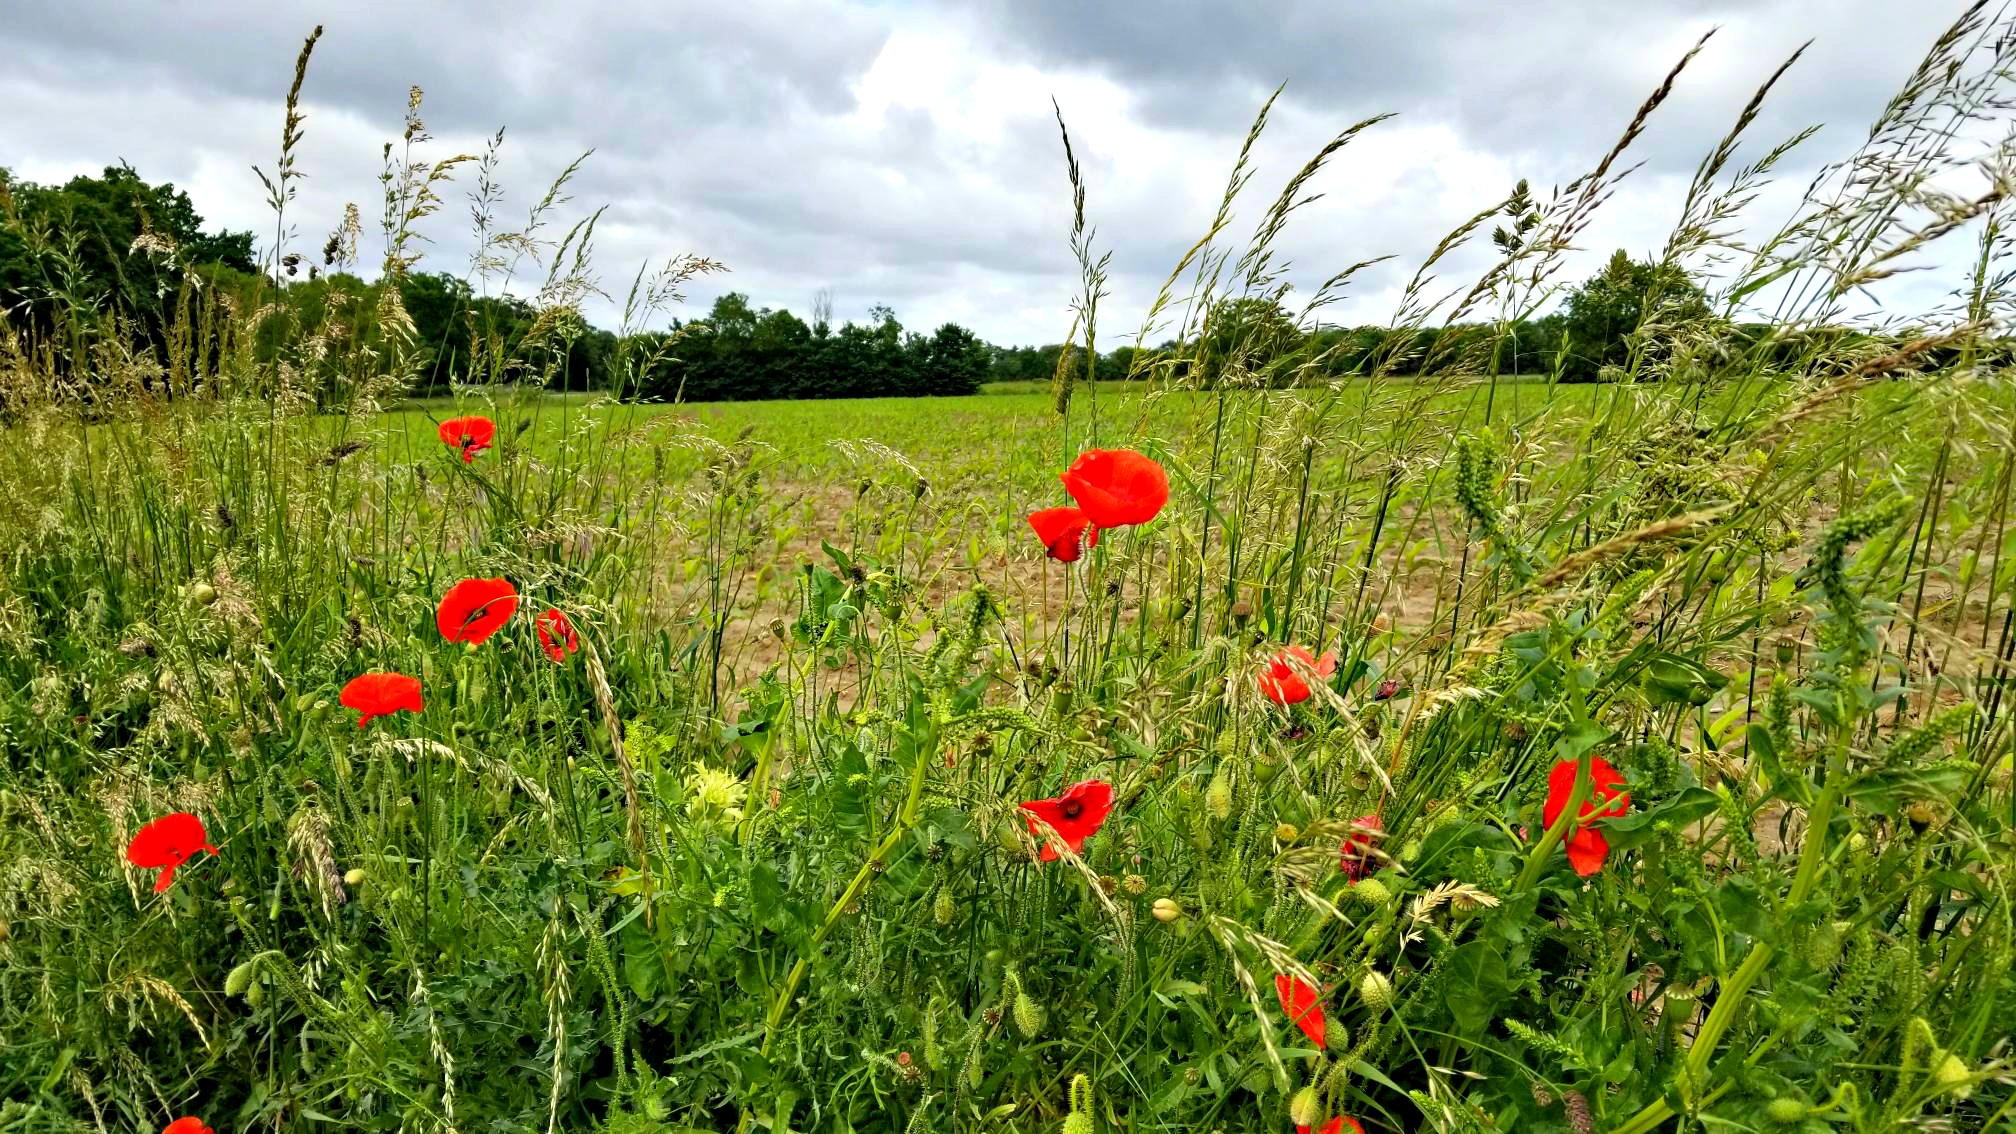 photo, image, poppies, auvers-sur-oises